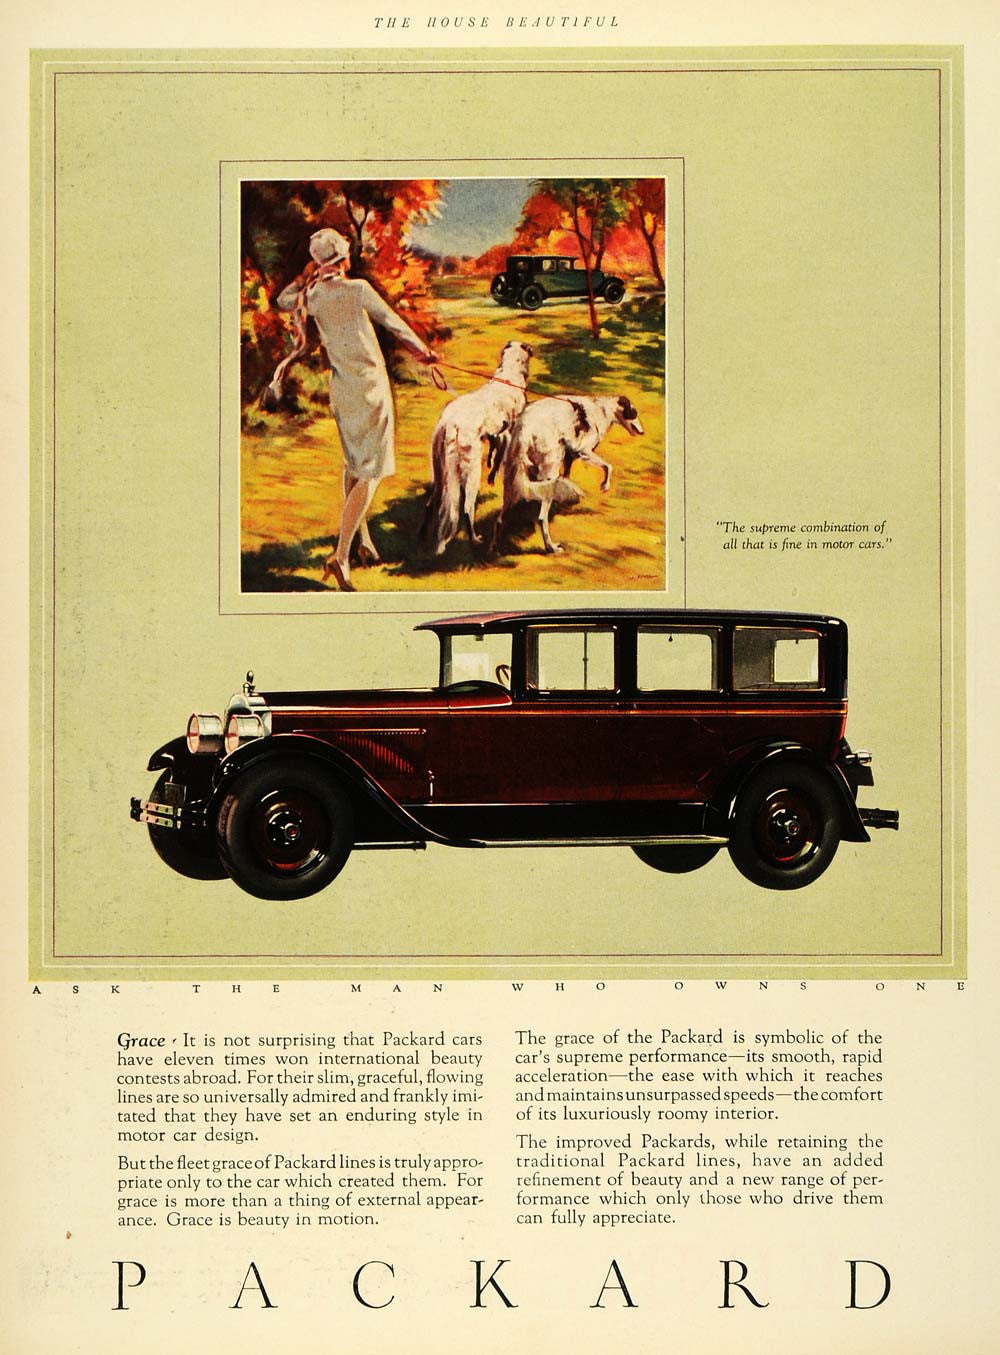 1926 Ad Packard Motor Car Luxury Automobile Borzoi Dogs Russian Wolfhound HB2 - Period Paper